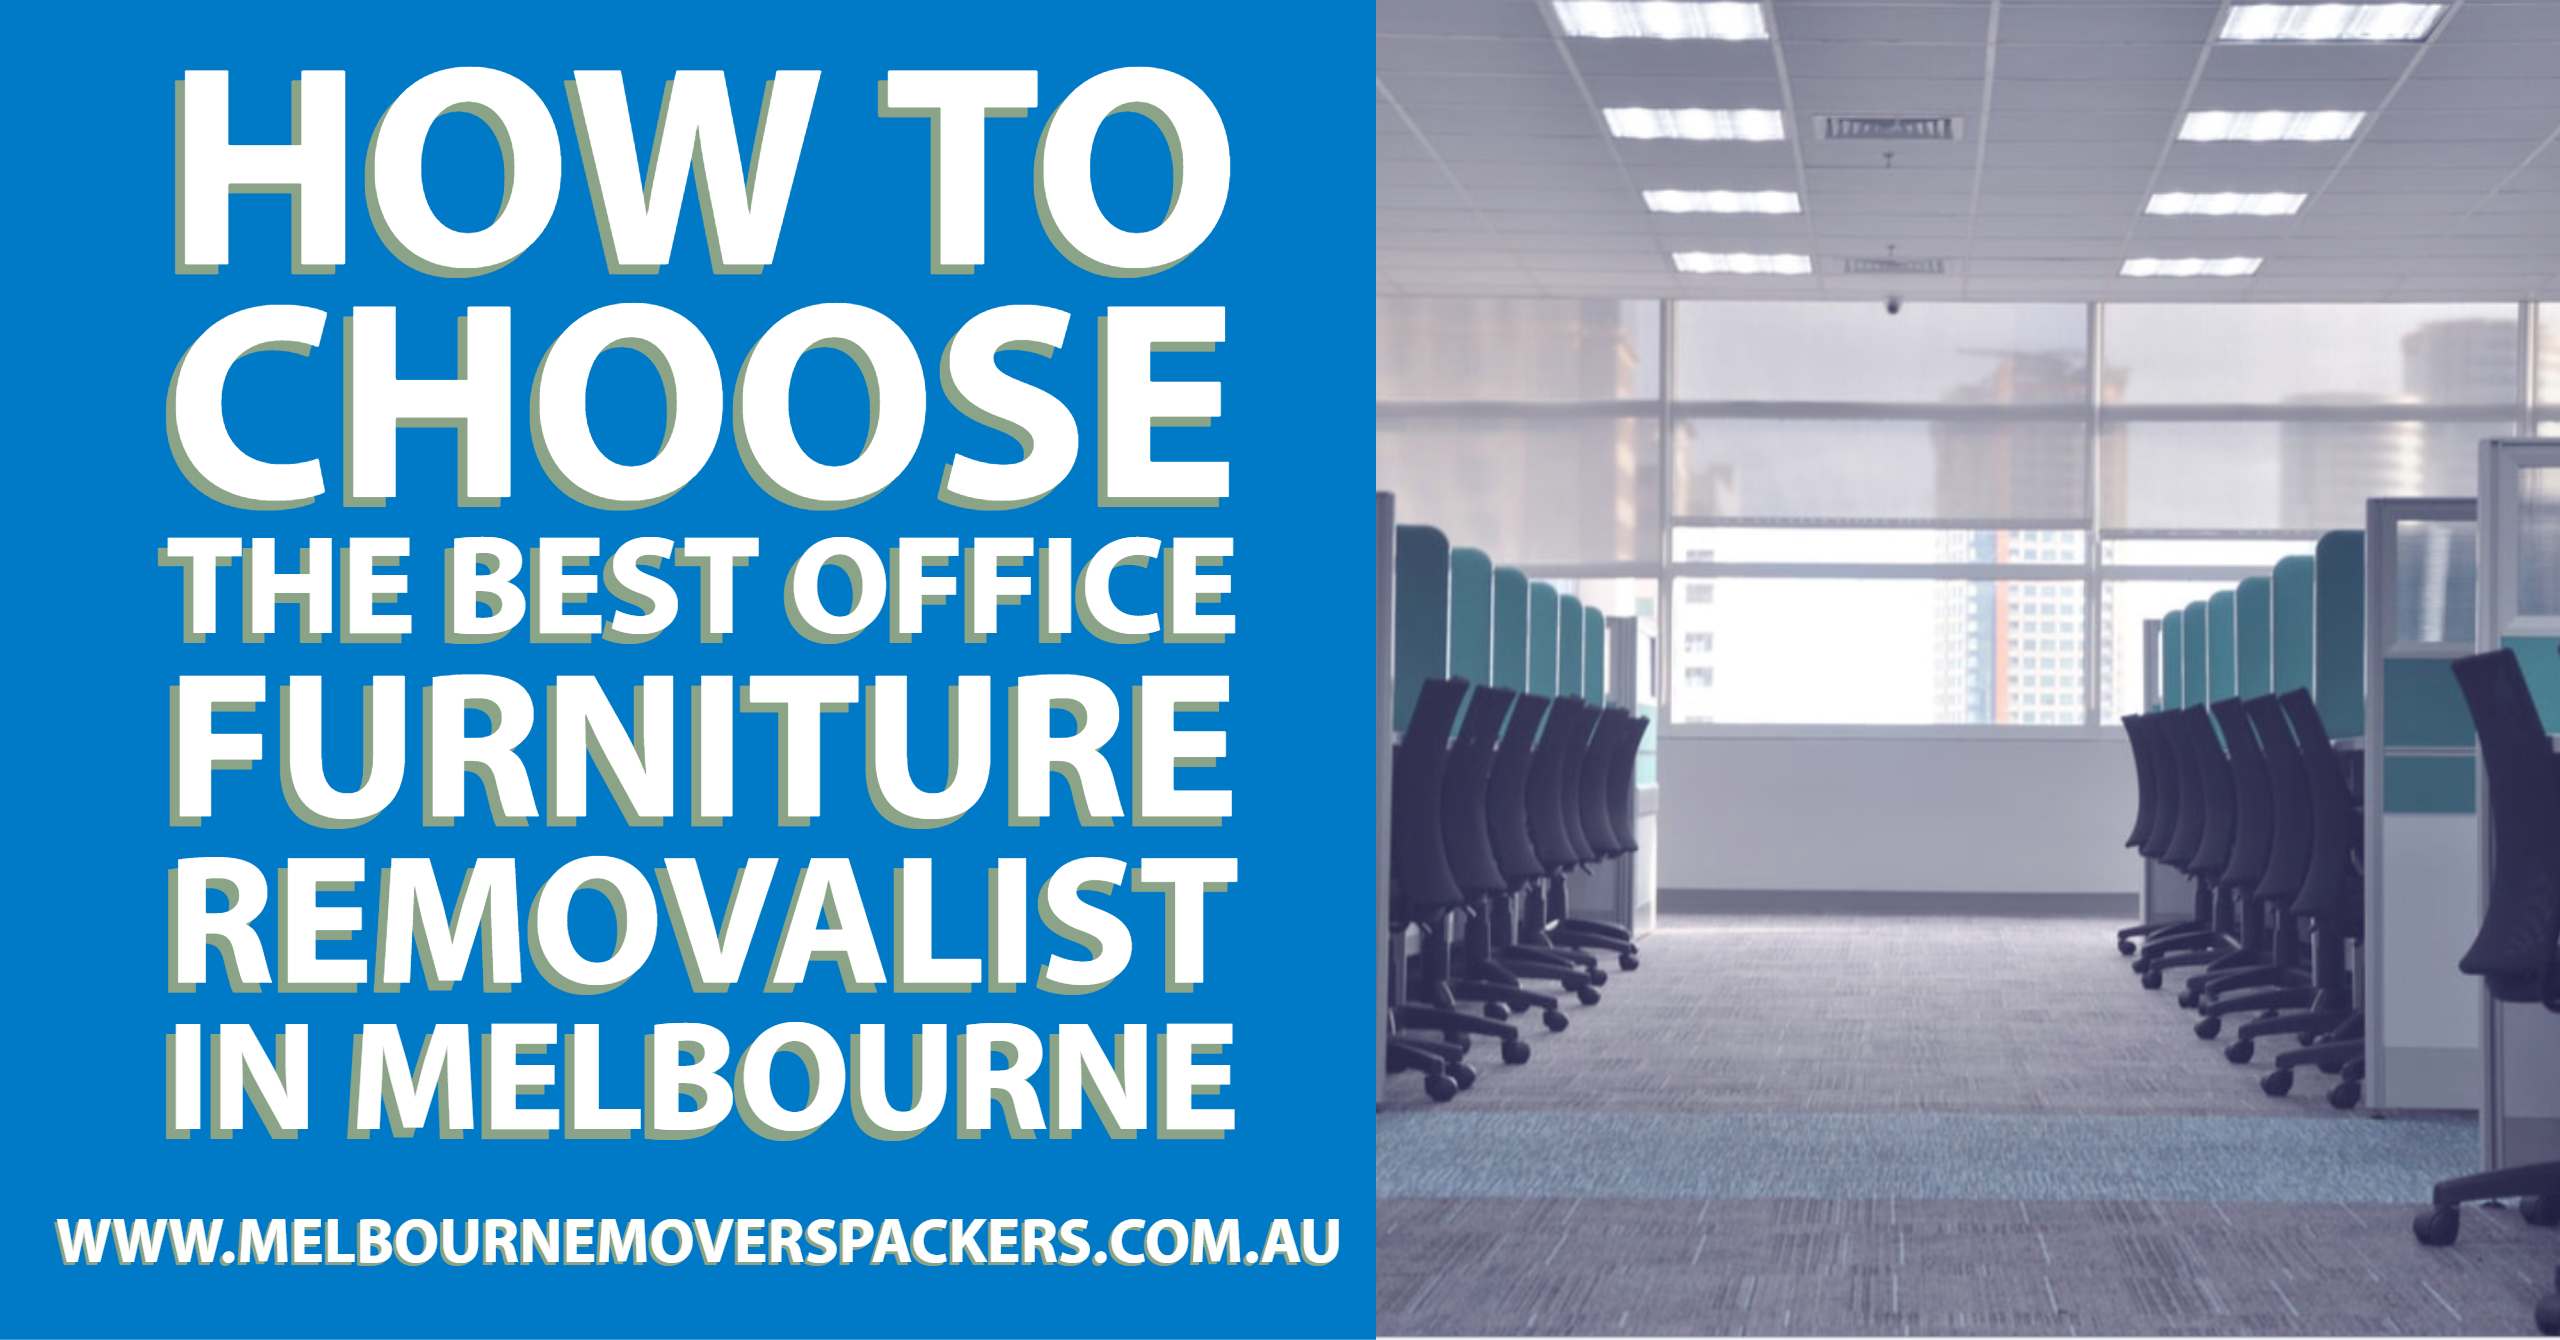 How to Choose the Best Office Furniture Removalist in Melbourne